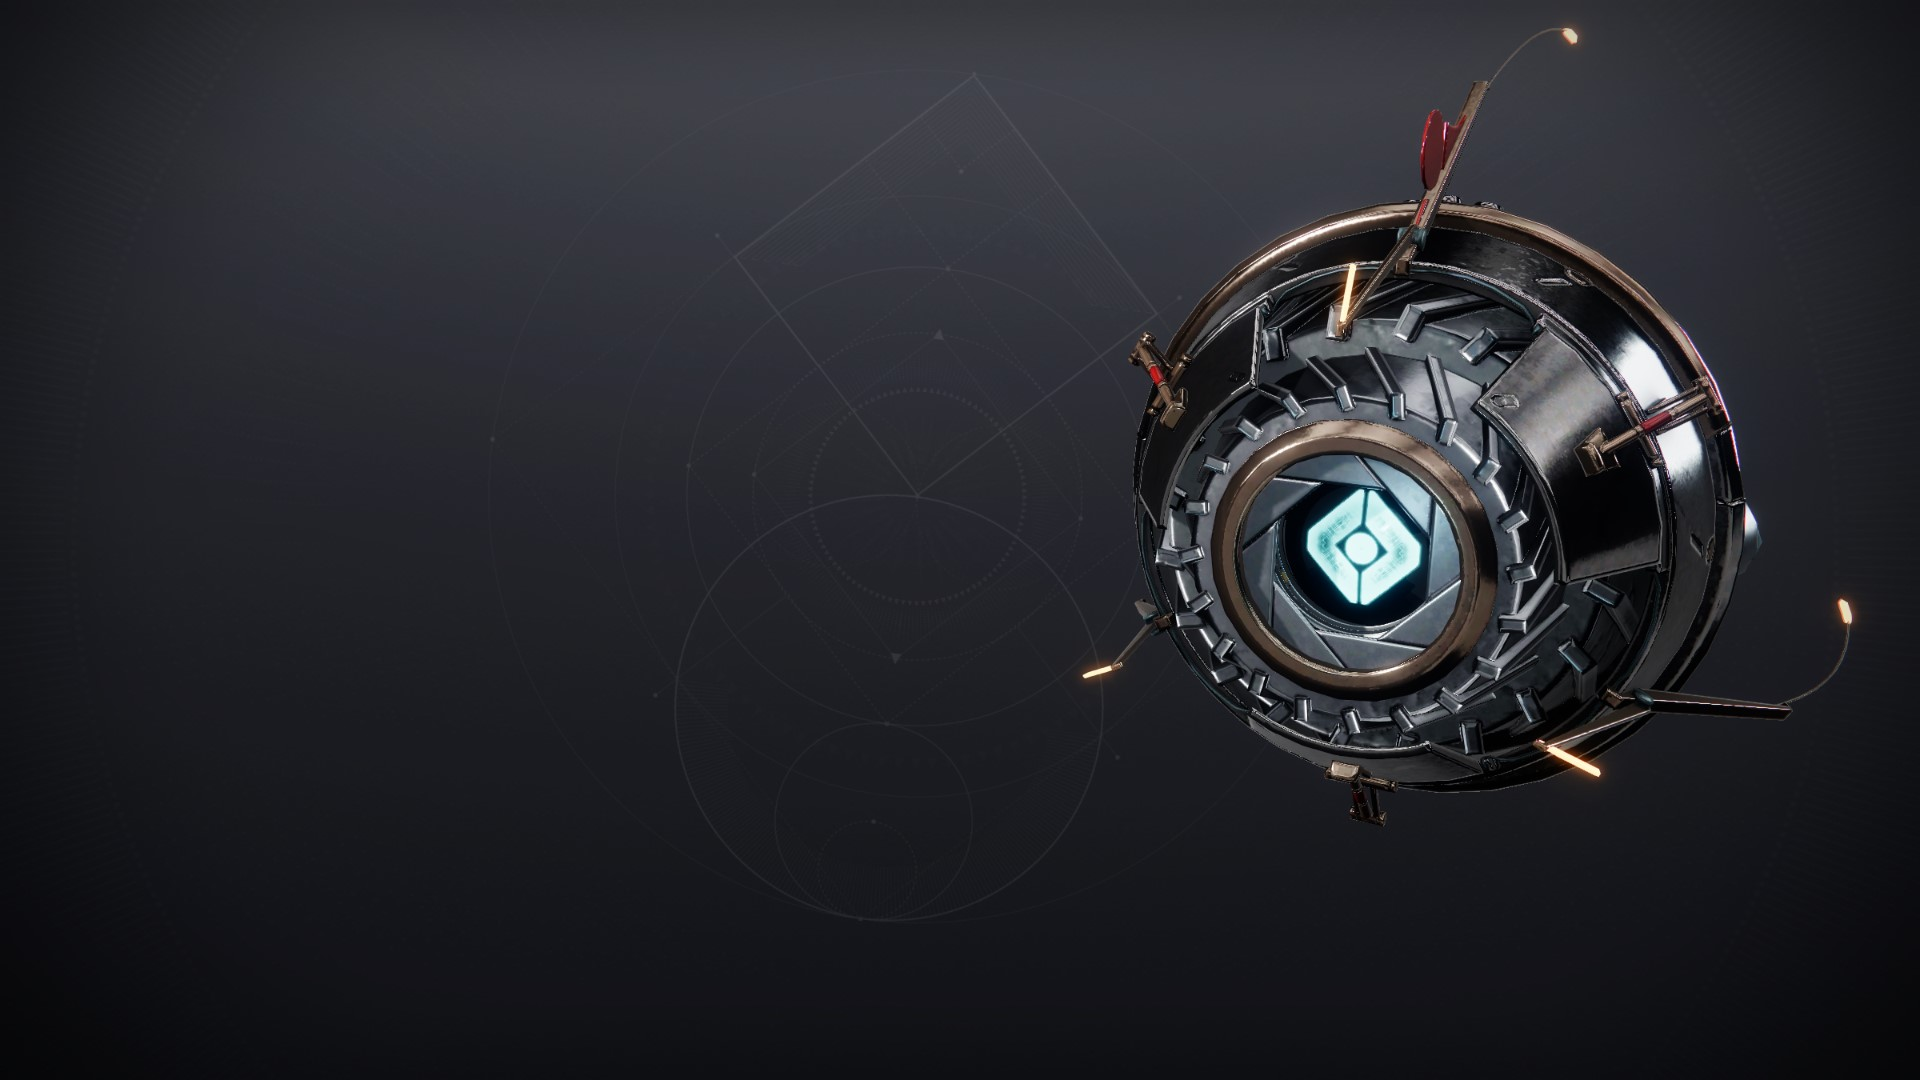 An in-game render of the Stardevil Shell.